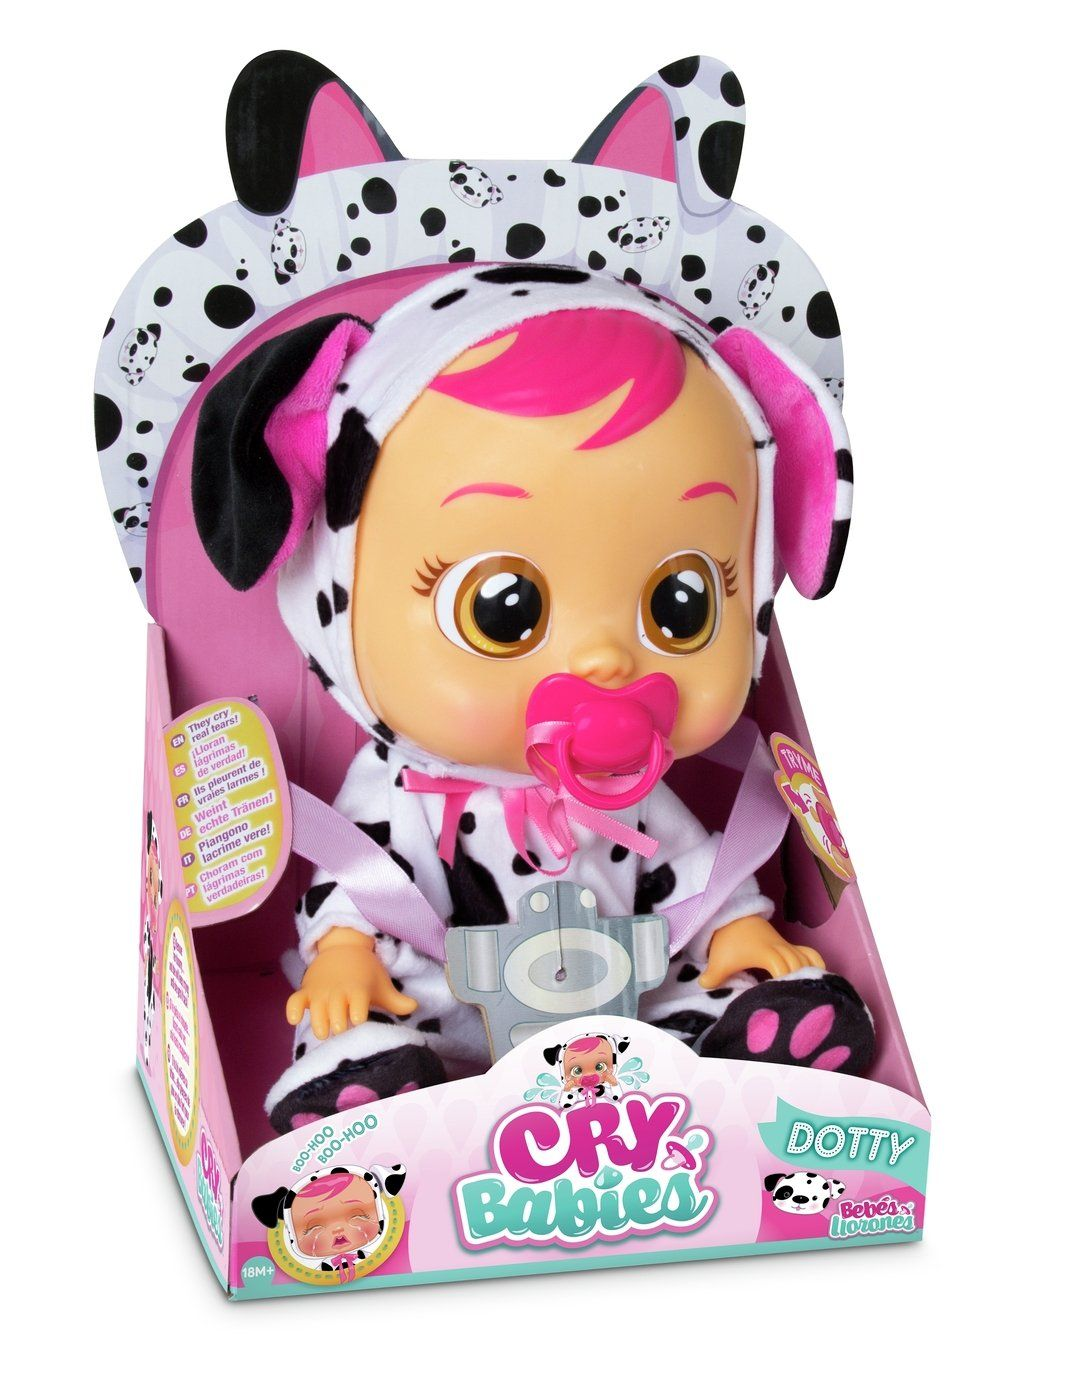 Cry Babies Dotty Doll Cry Baby Baby Dolls Baby Girl Toys